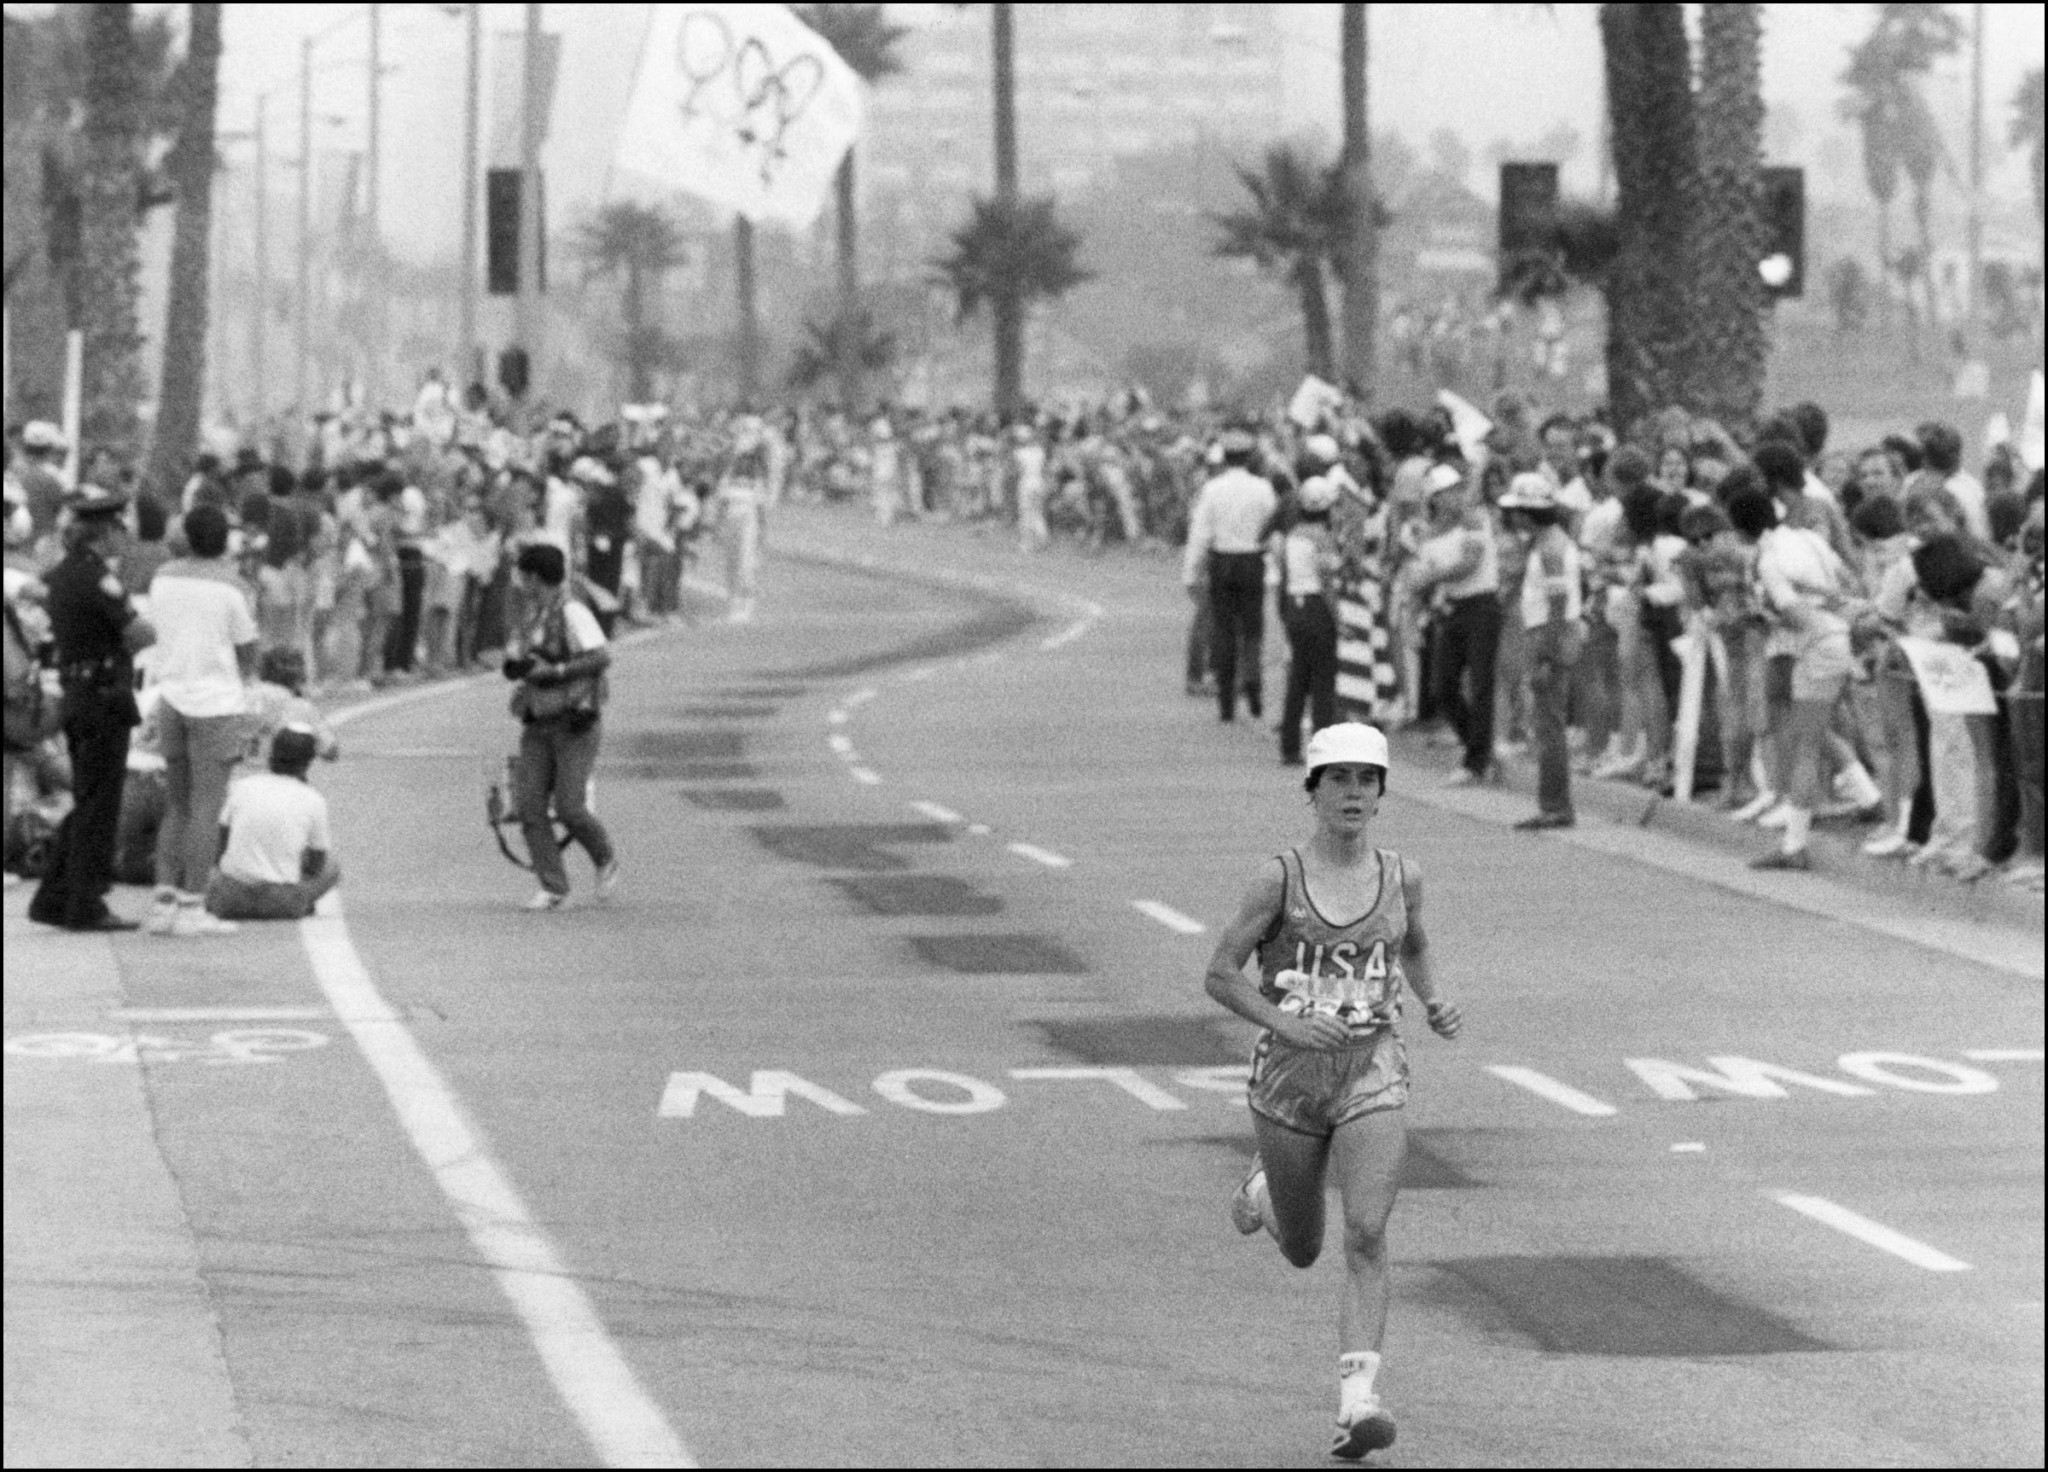 Women have competed the marathon distance at the Olympics since Los Angeles 1984, when the United States Joan Benoit won the inaugural edition ©AFP/Getty Images